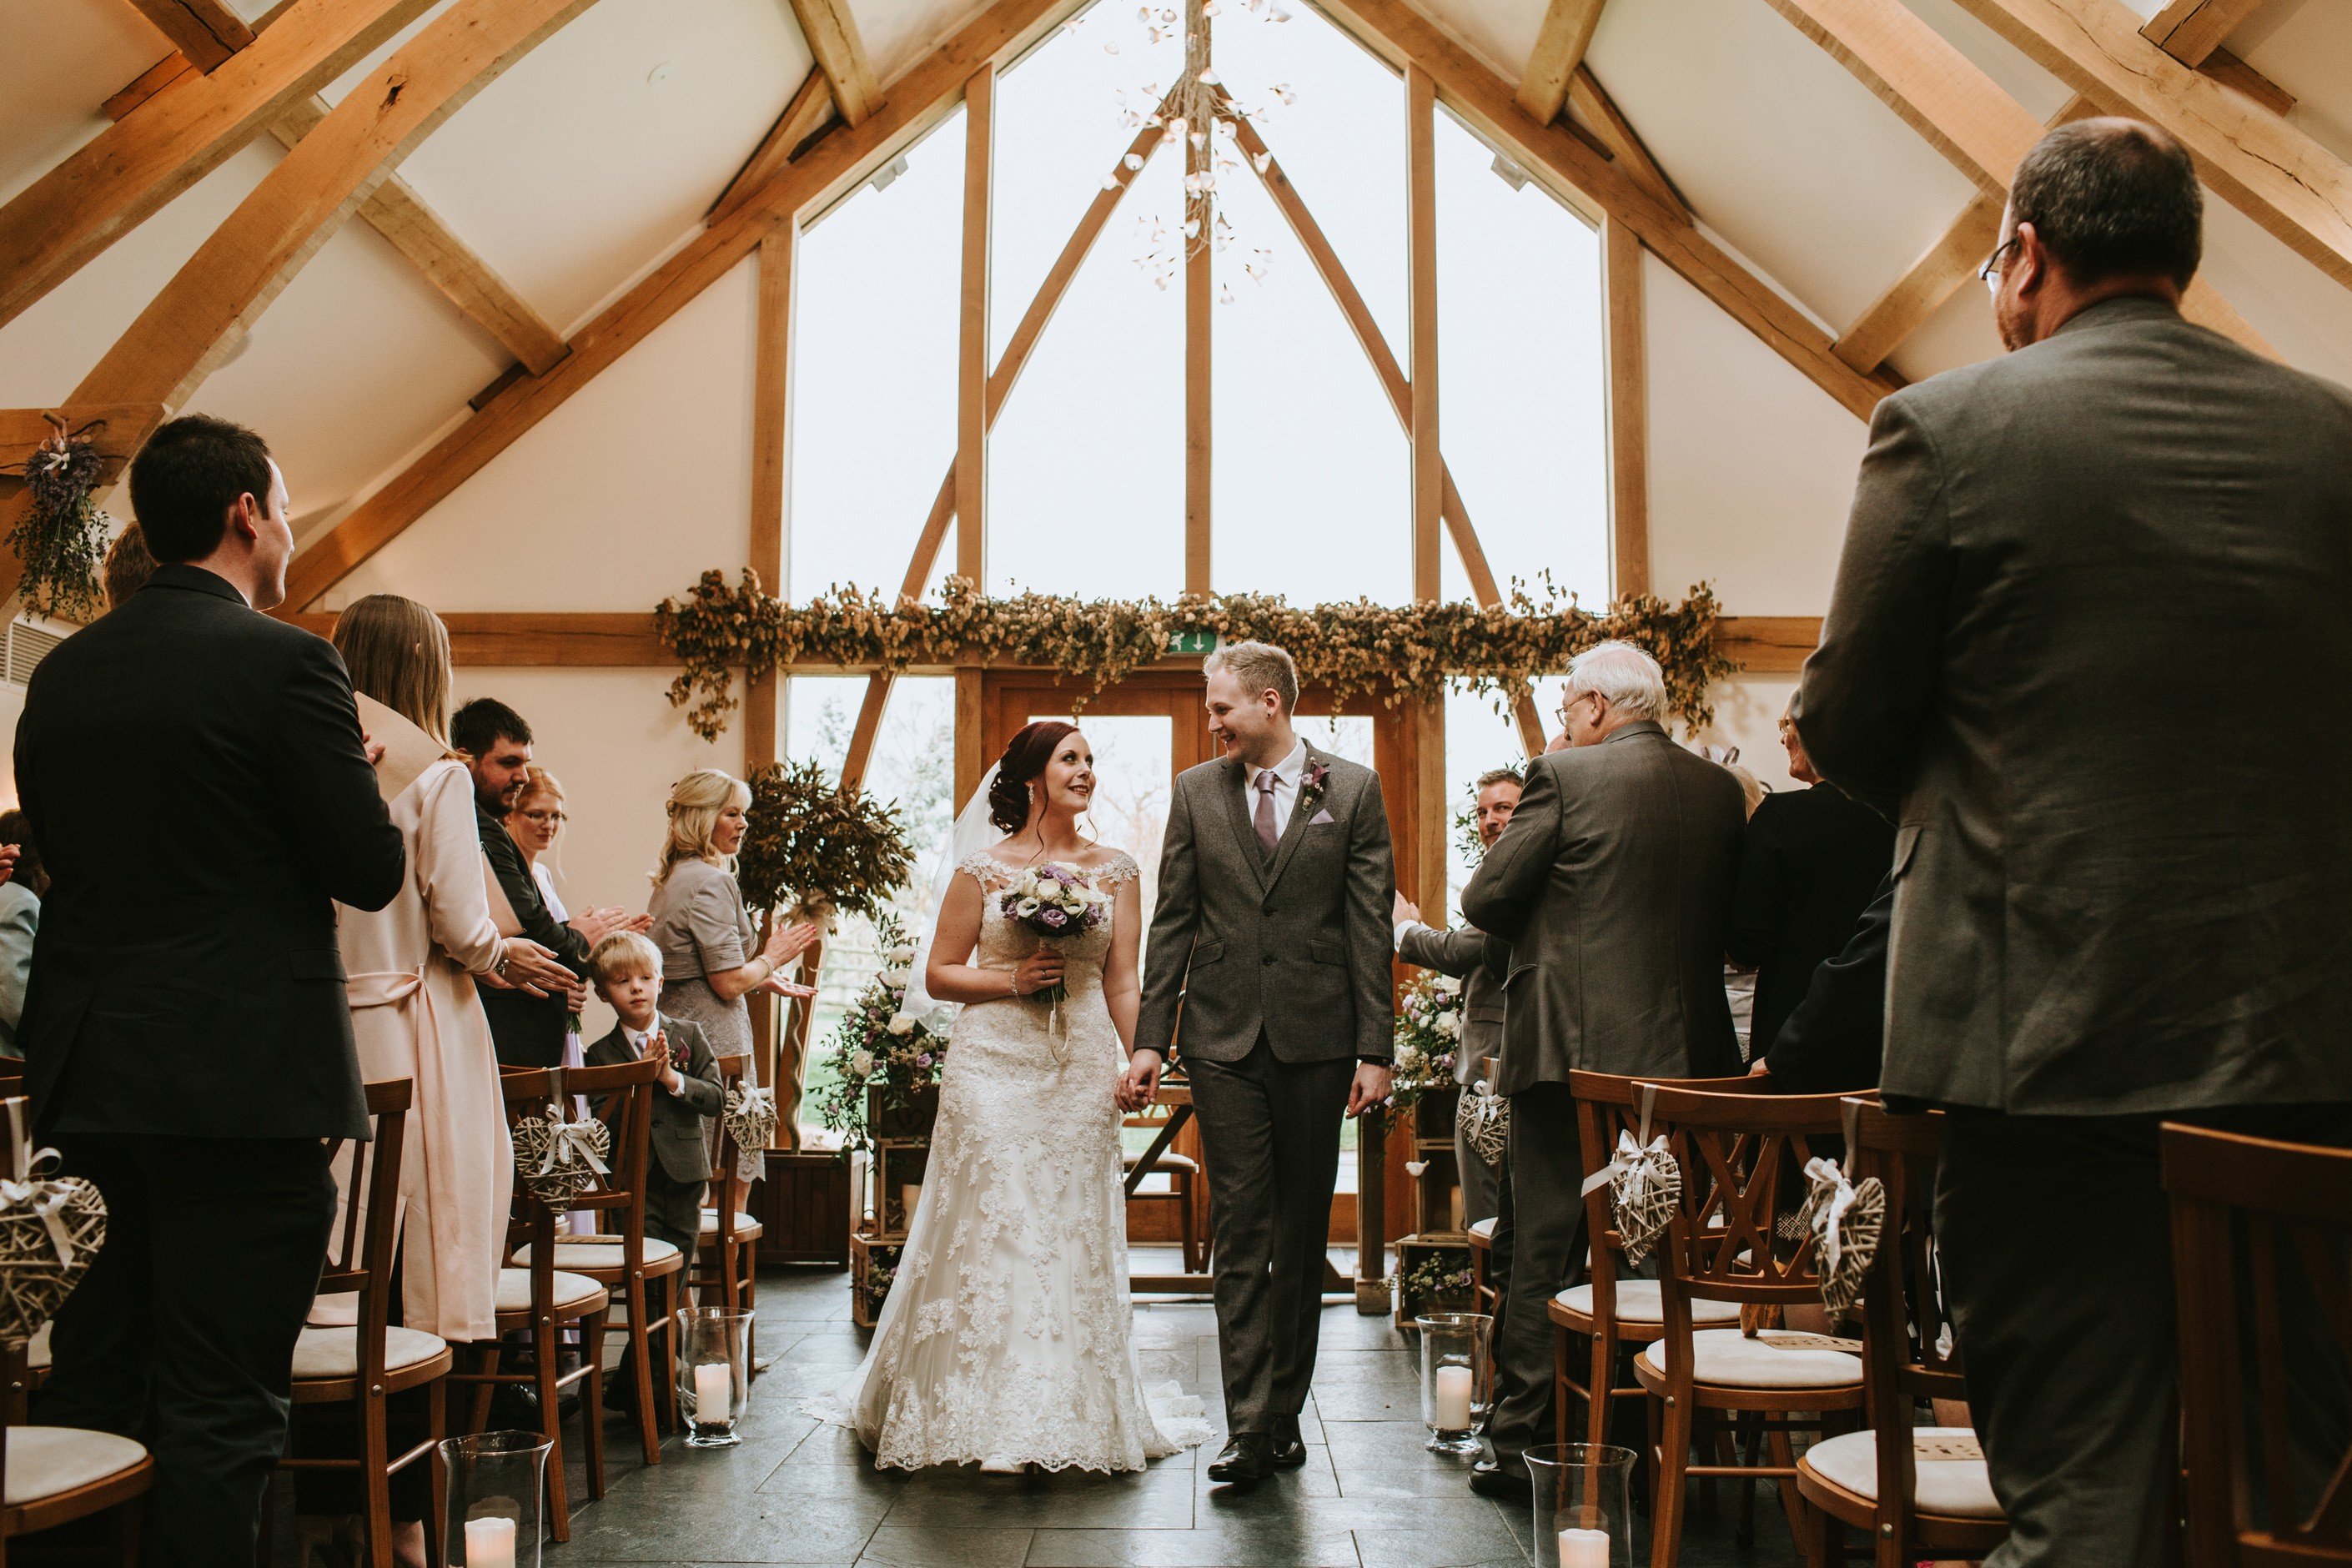 wedding, barn wedding, mythe barn wedding, laura and matthew, wedding ideas, wedding inspiration